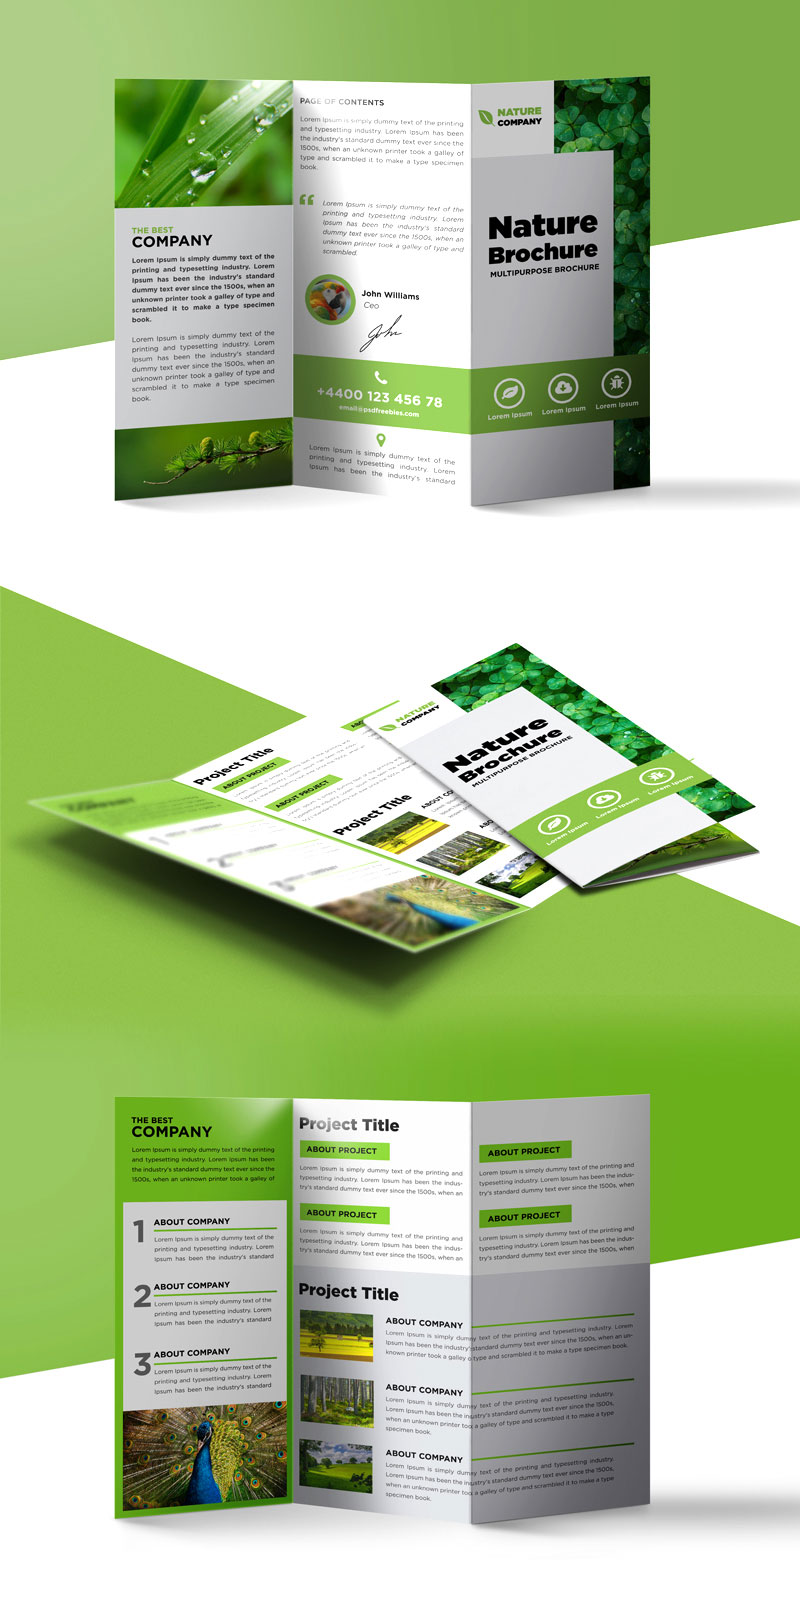 Nature tri fold brochure template free psd for Tri fold brochure design templates